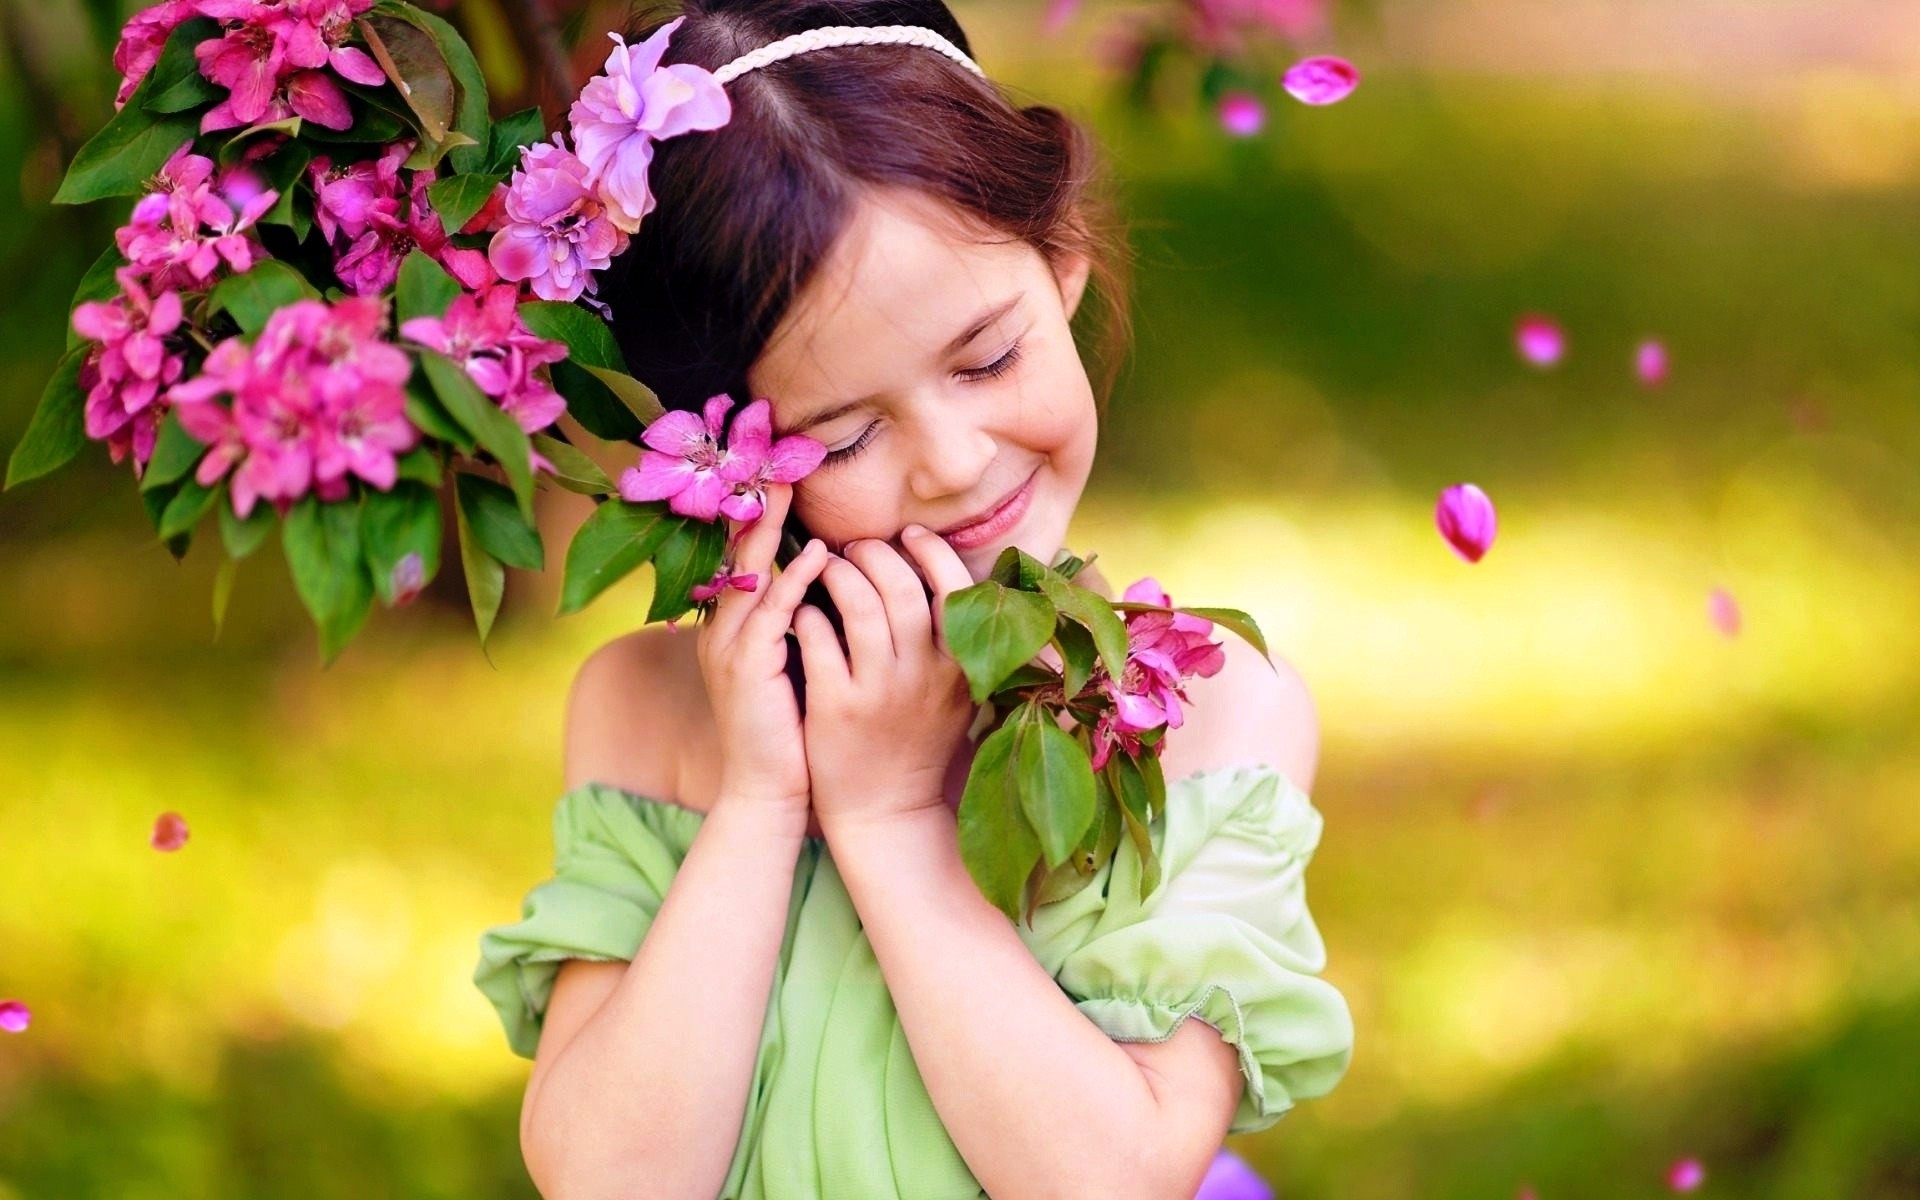 1920x1200 Source · Innocent flowers love of cute baby girl wallpapers HD Wallpapers